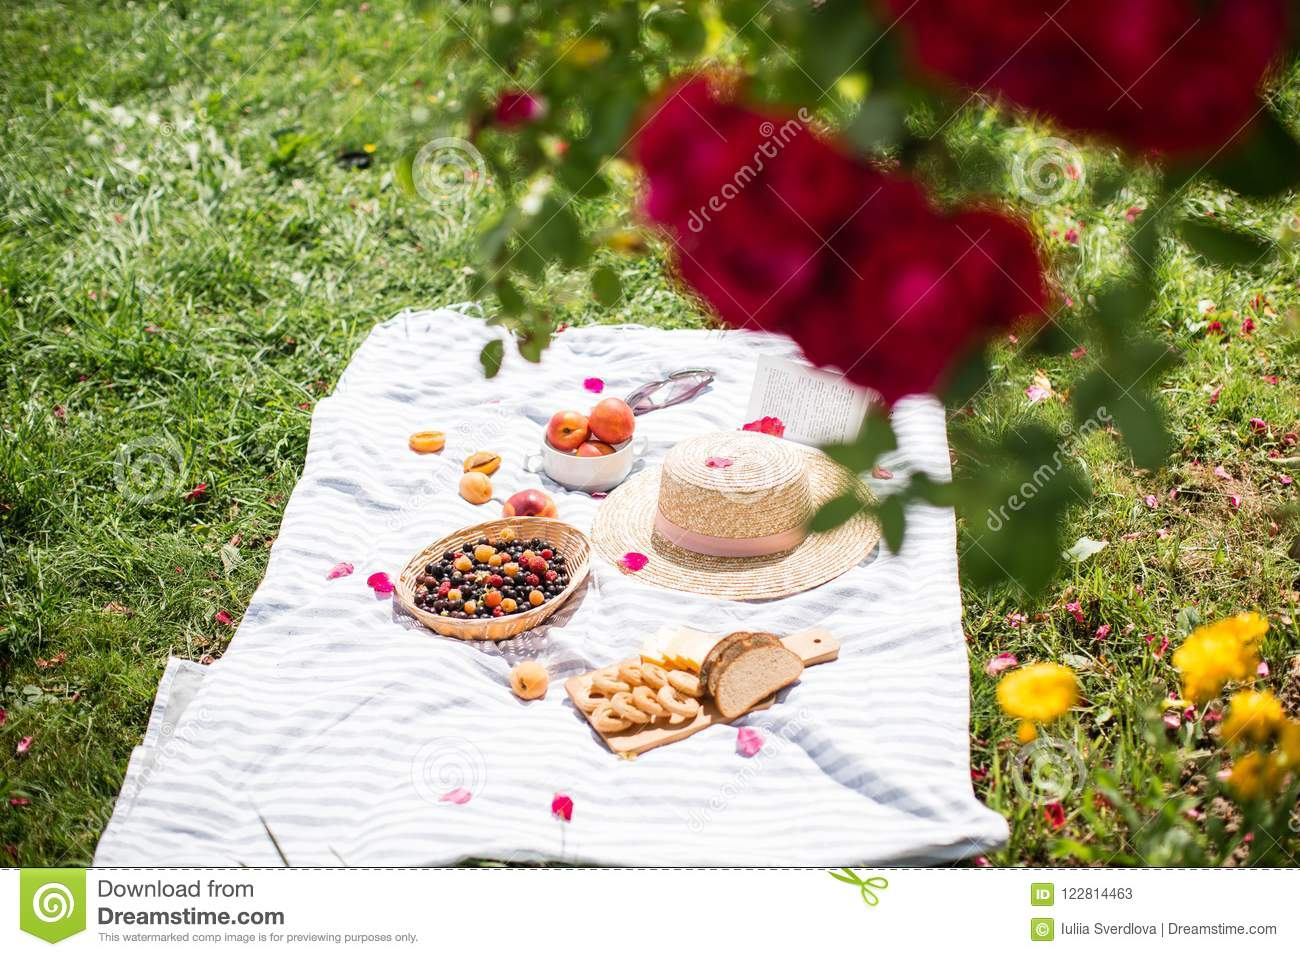 Summer vacation in the garden under the red roses